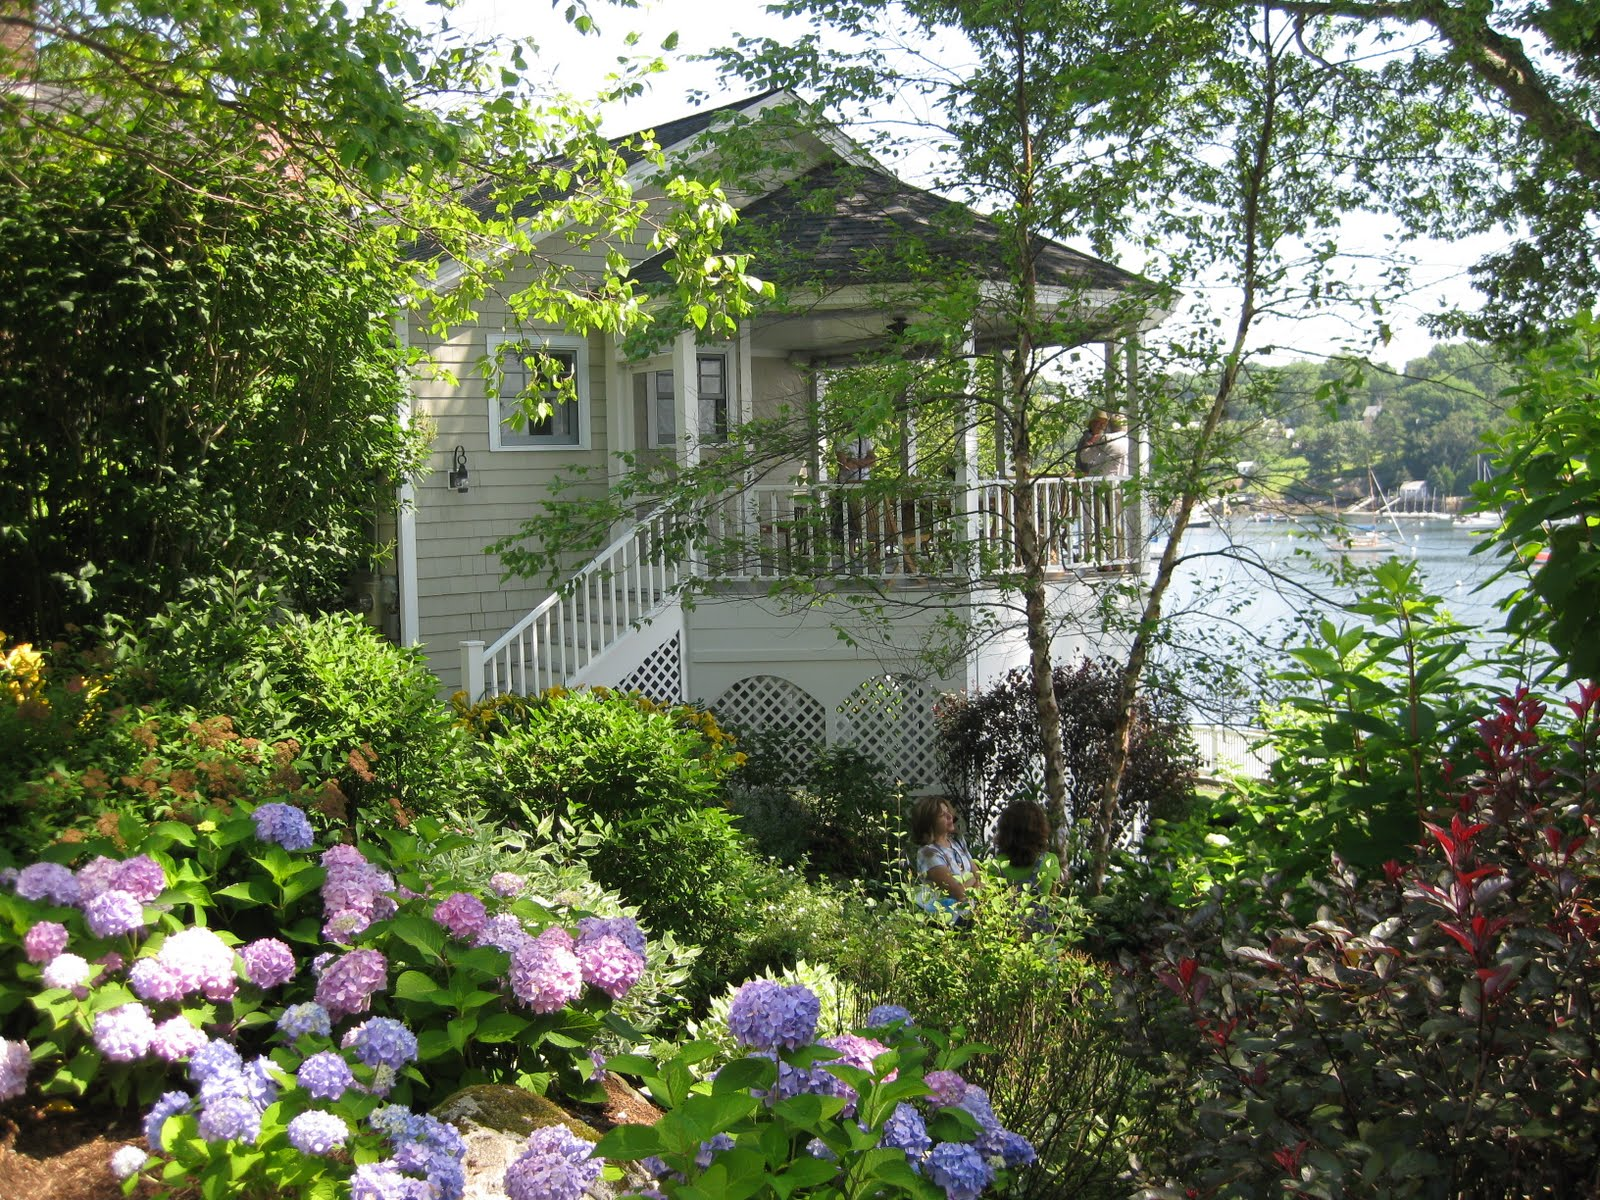 All the latest dirt camden maine house garden tour House garden pics